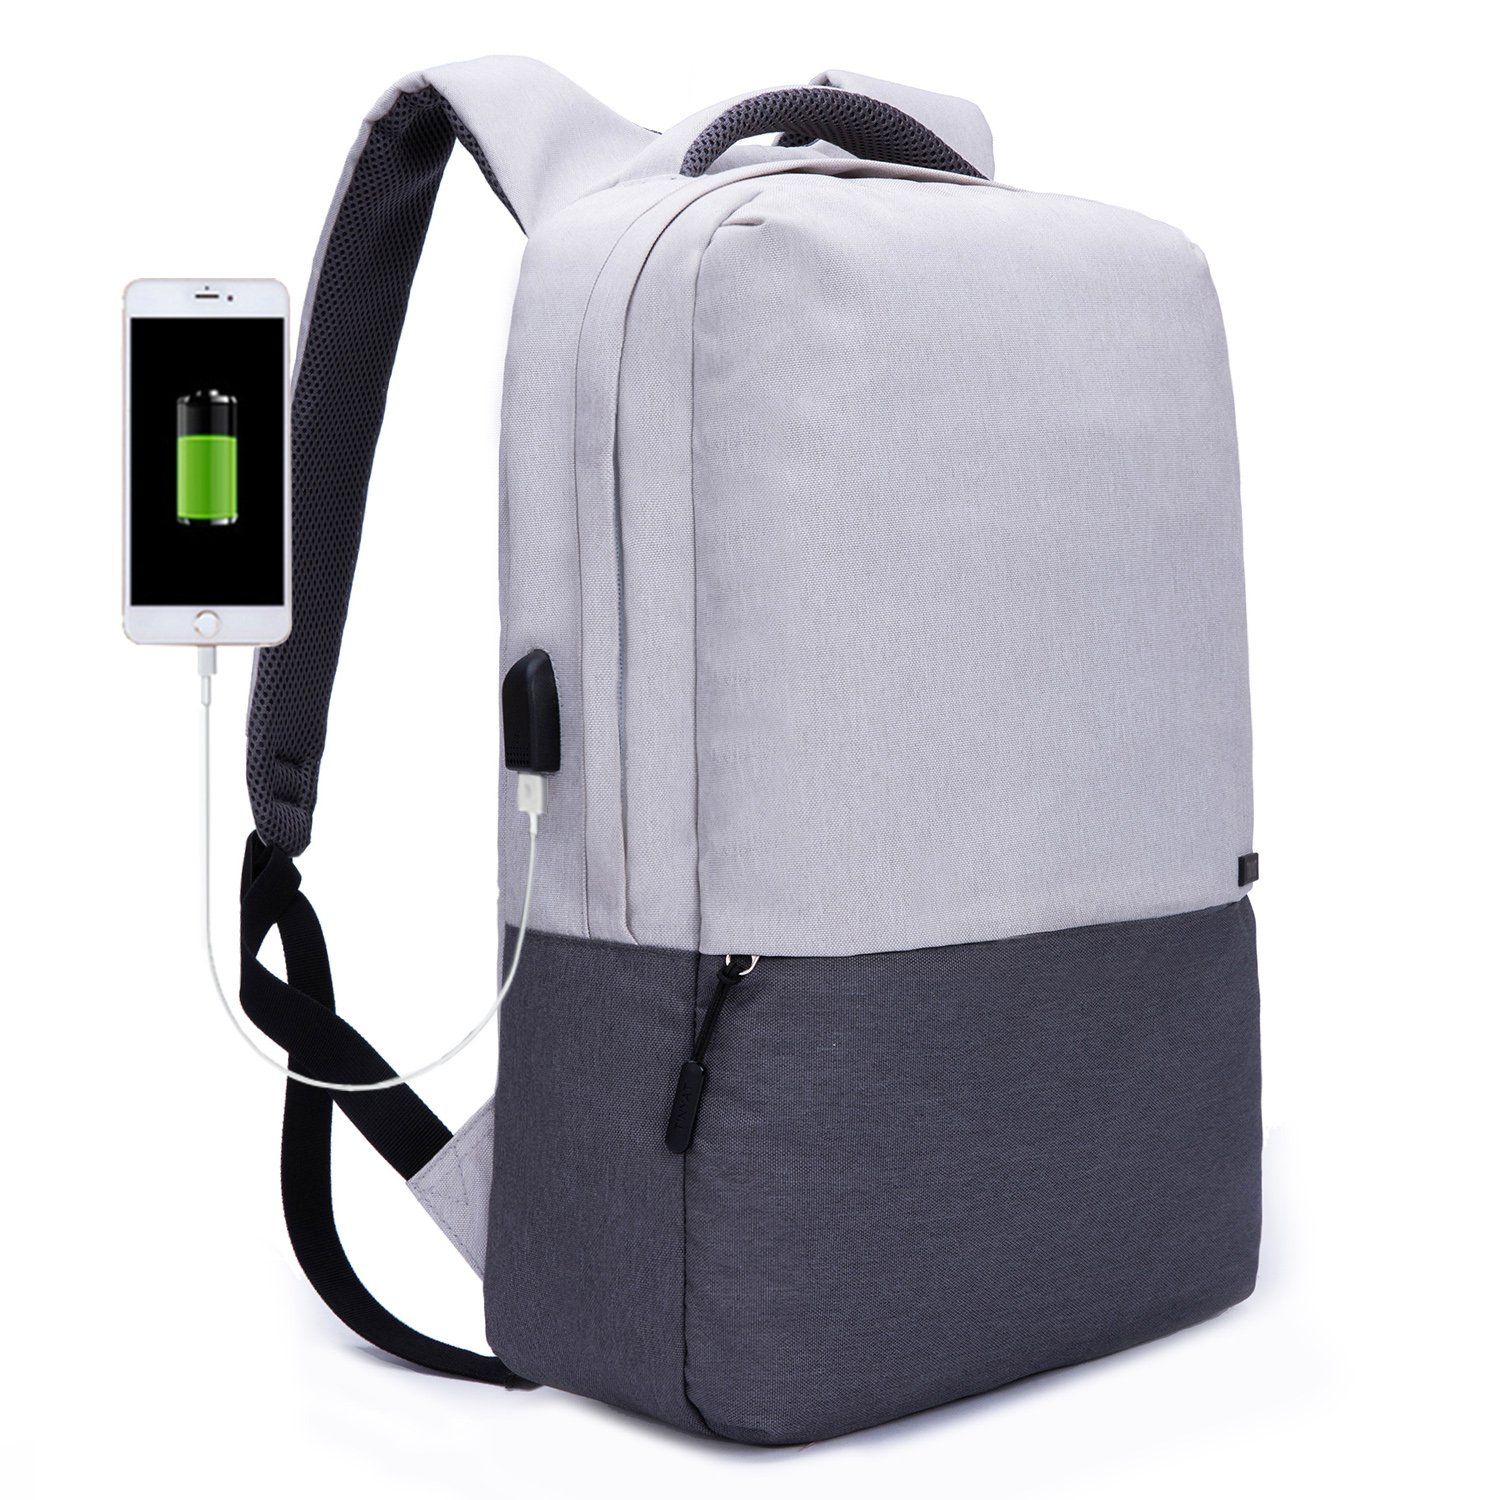 limited quantity new lifestyle color brilliancy TINYAT Travel Backpack with USB Charging Port Durable Water Resistant  Computer Bag for Women and Men Fits up to 15.6-Inch Laptop Bookbag T810